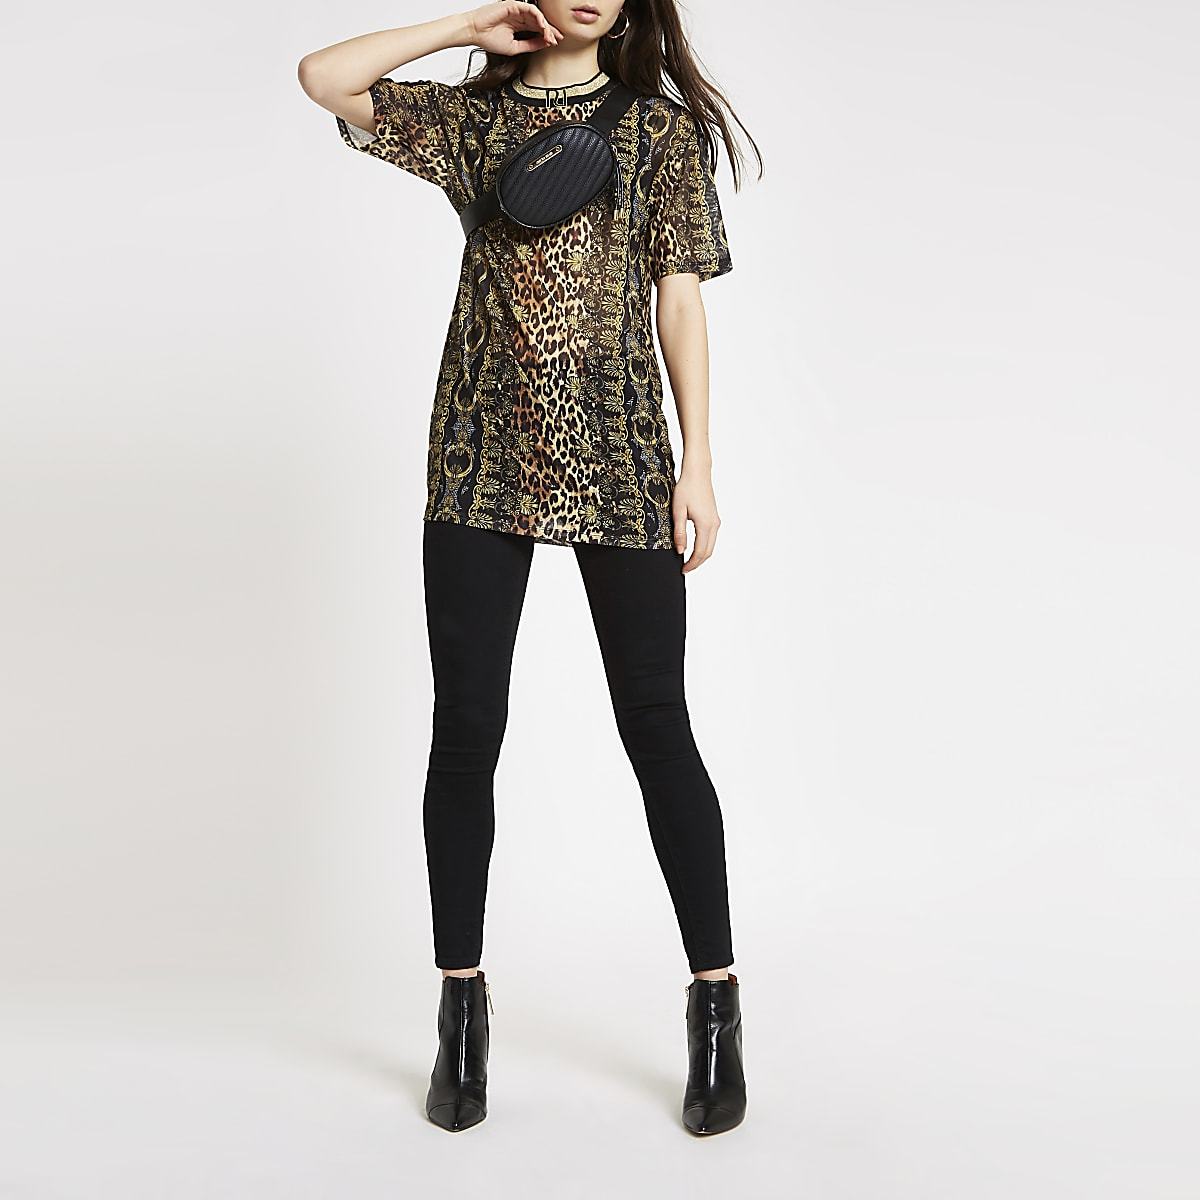 Black animal print short sleeve mesh top